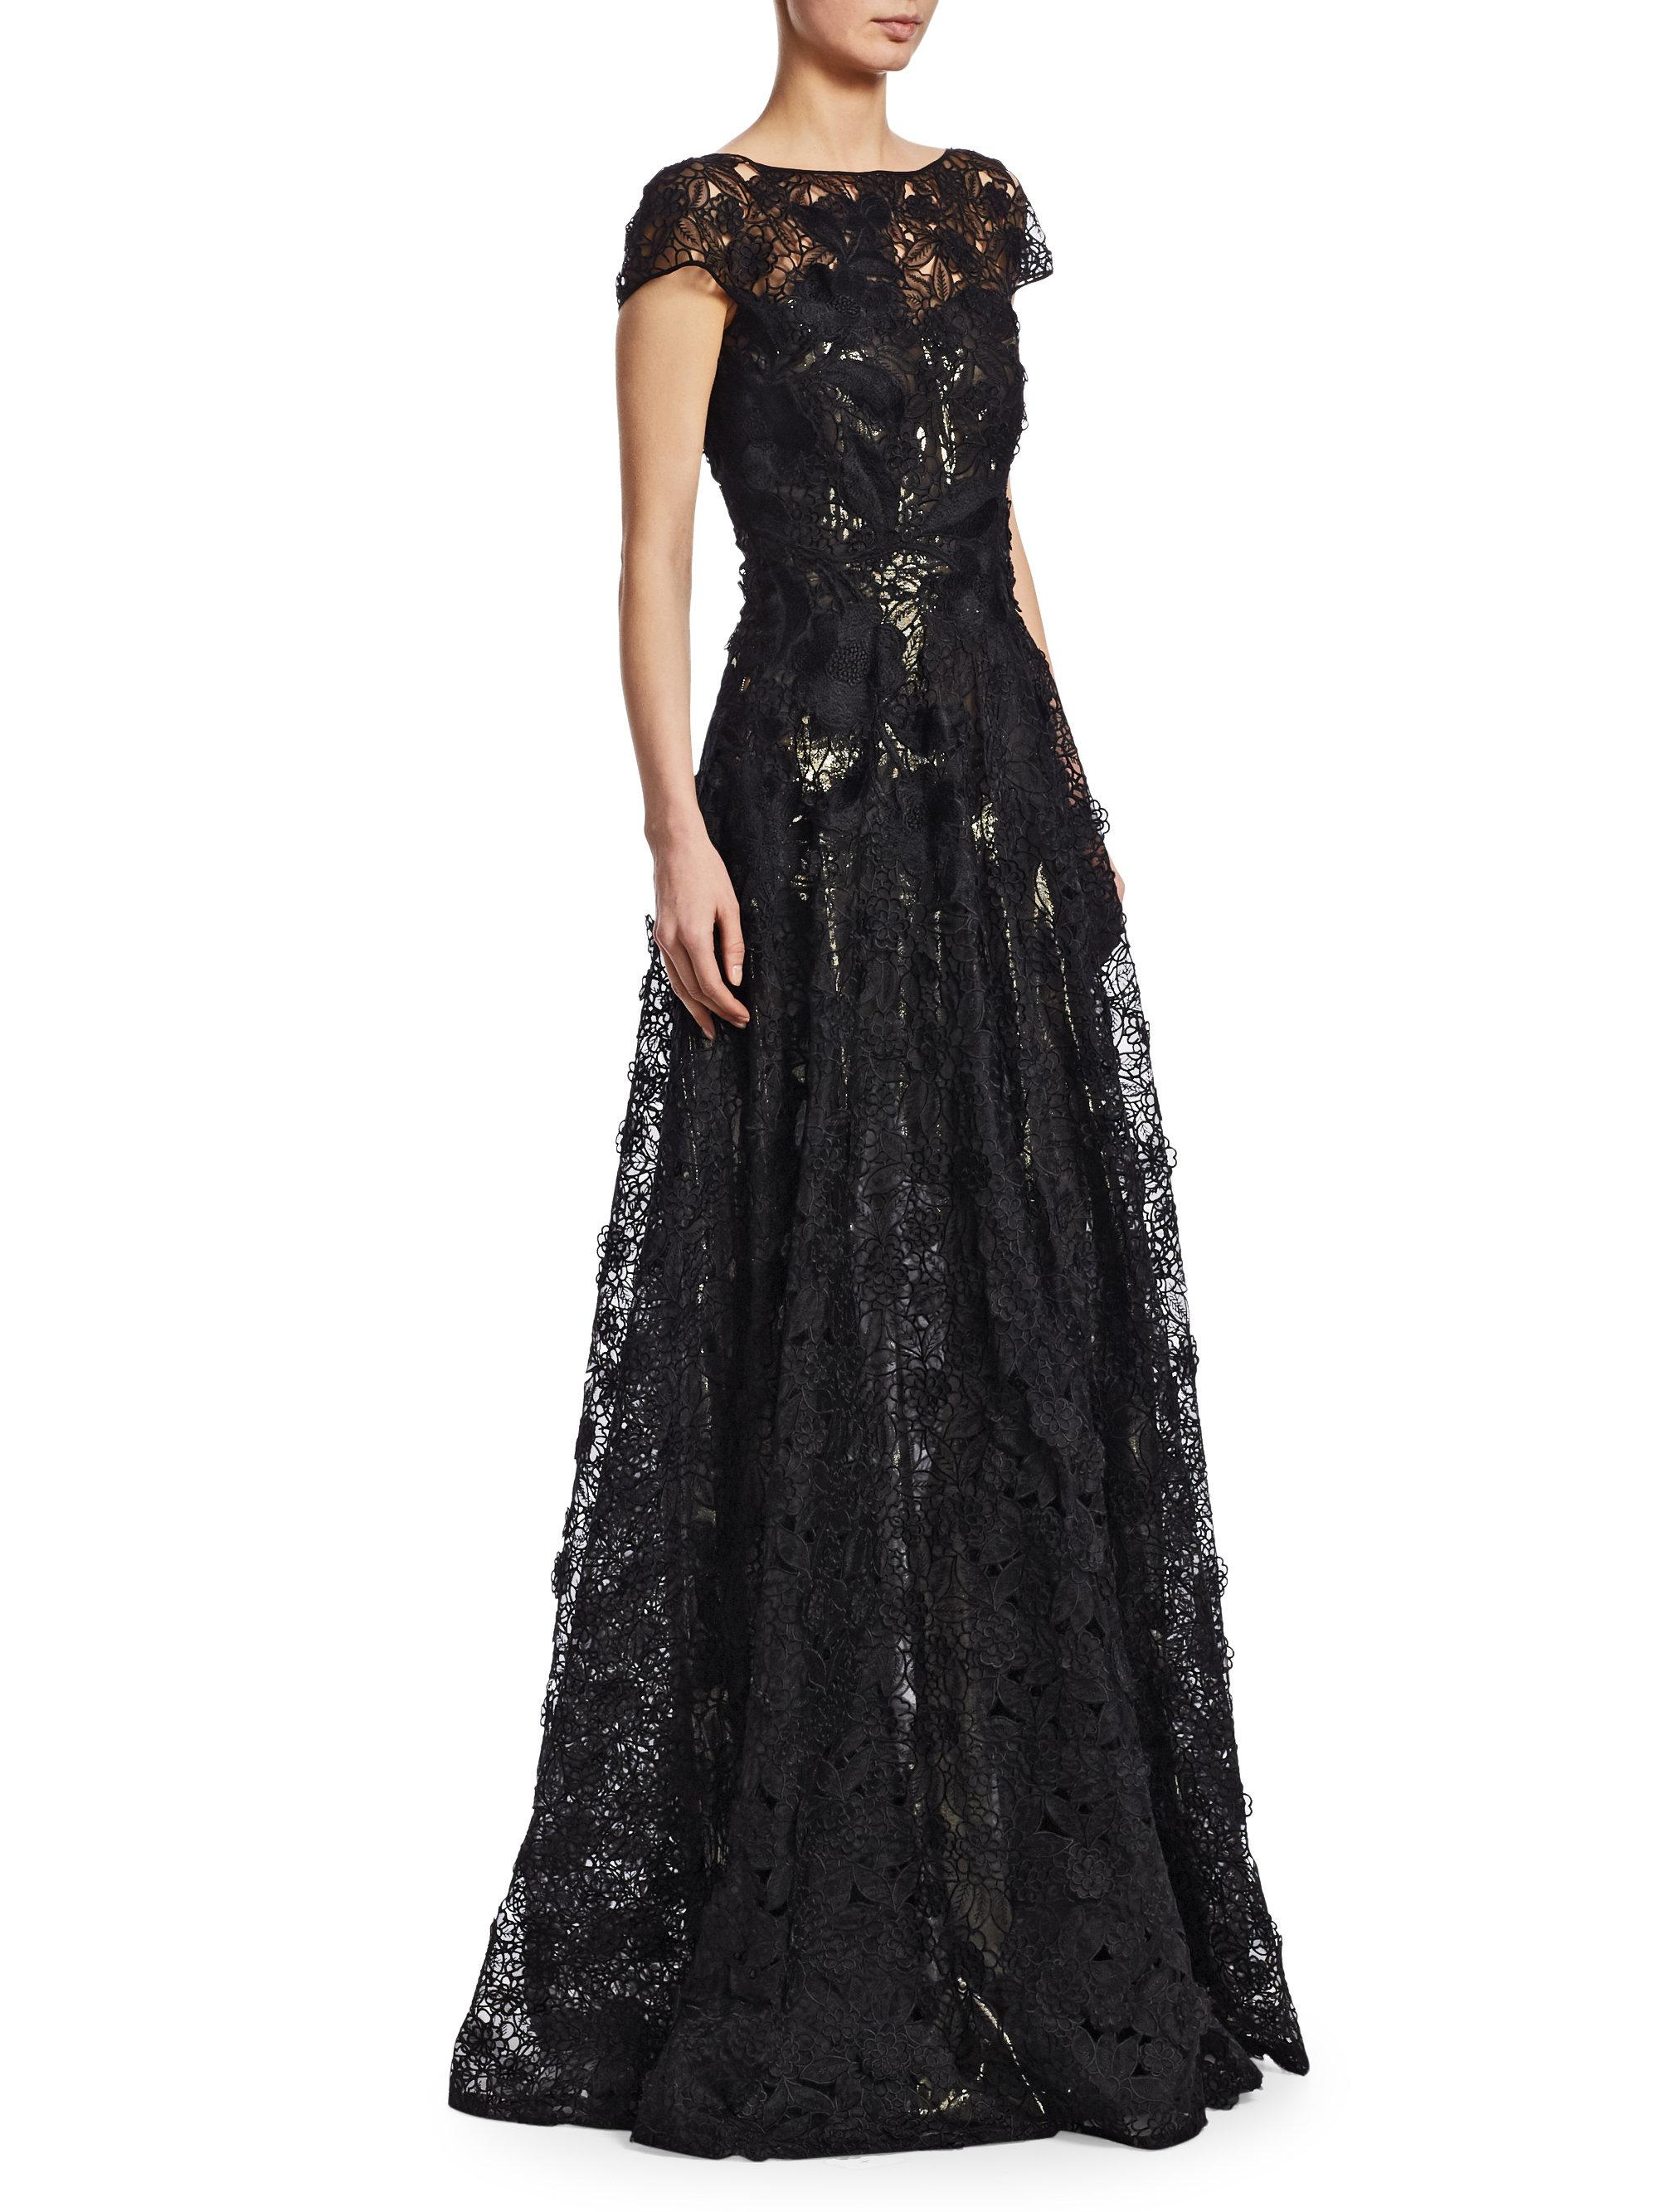 b3de48de83 Naeem Khan Illusion Embroidered Short-sleeve Gown in Black - Lyst